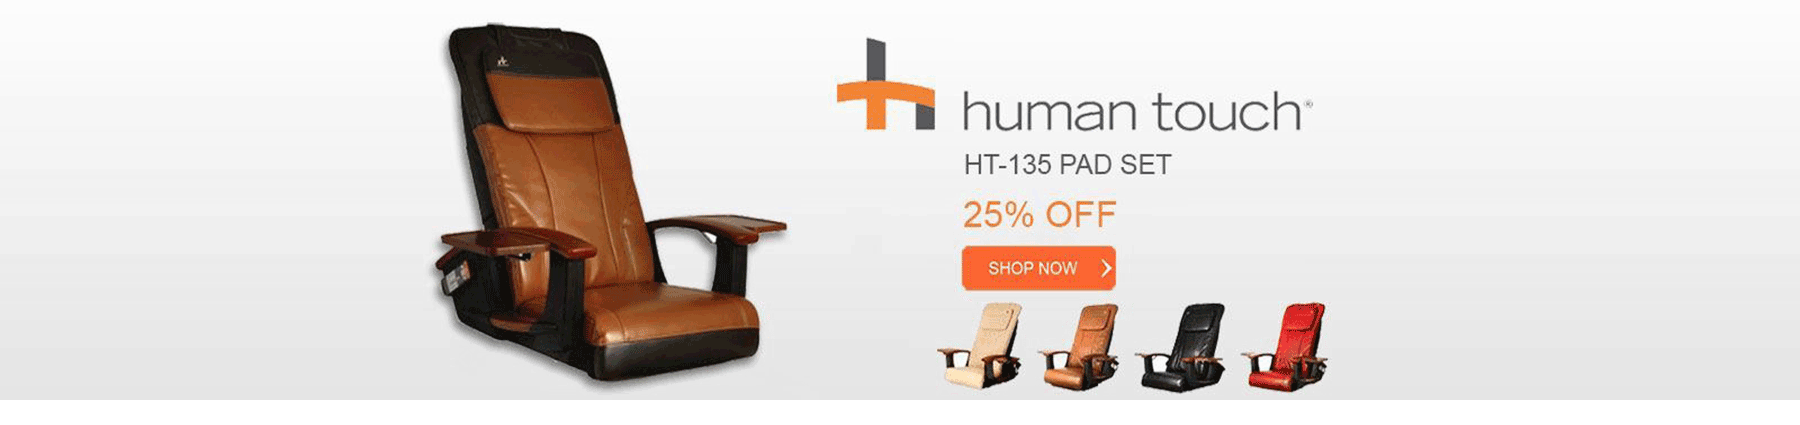 Human Touch HT-135 cushion pad set